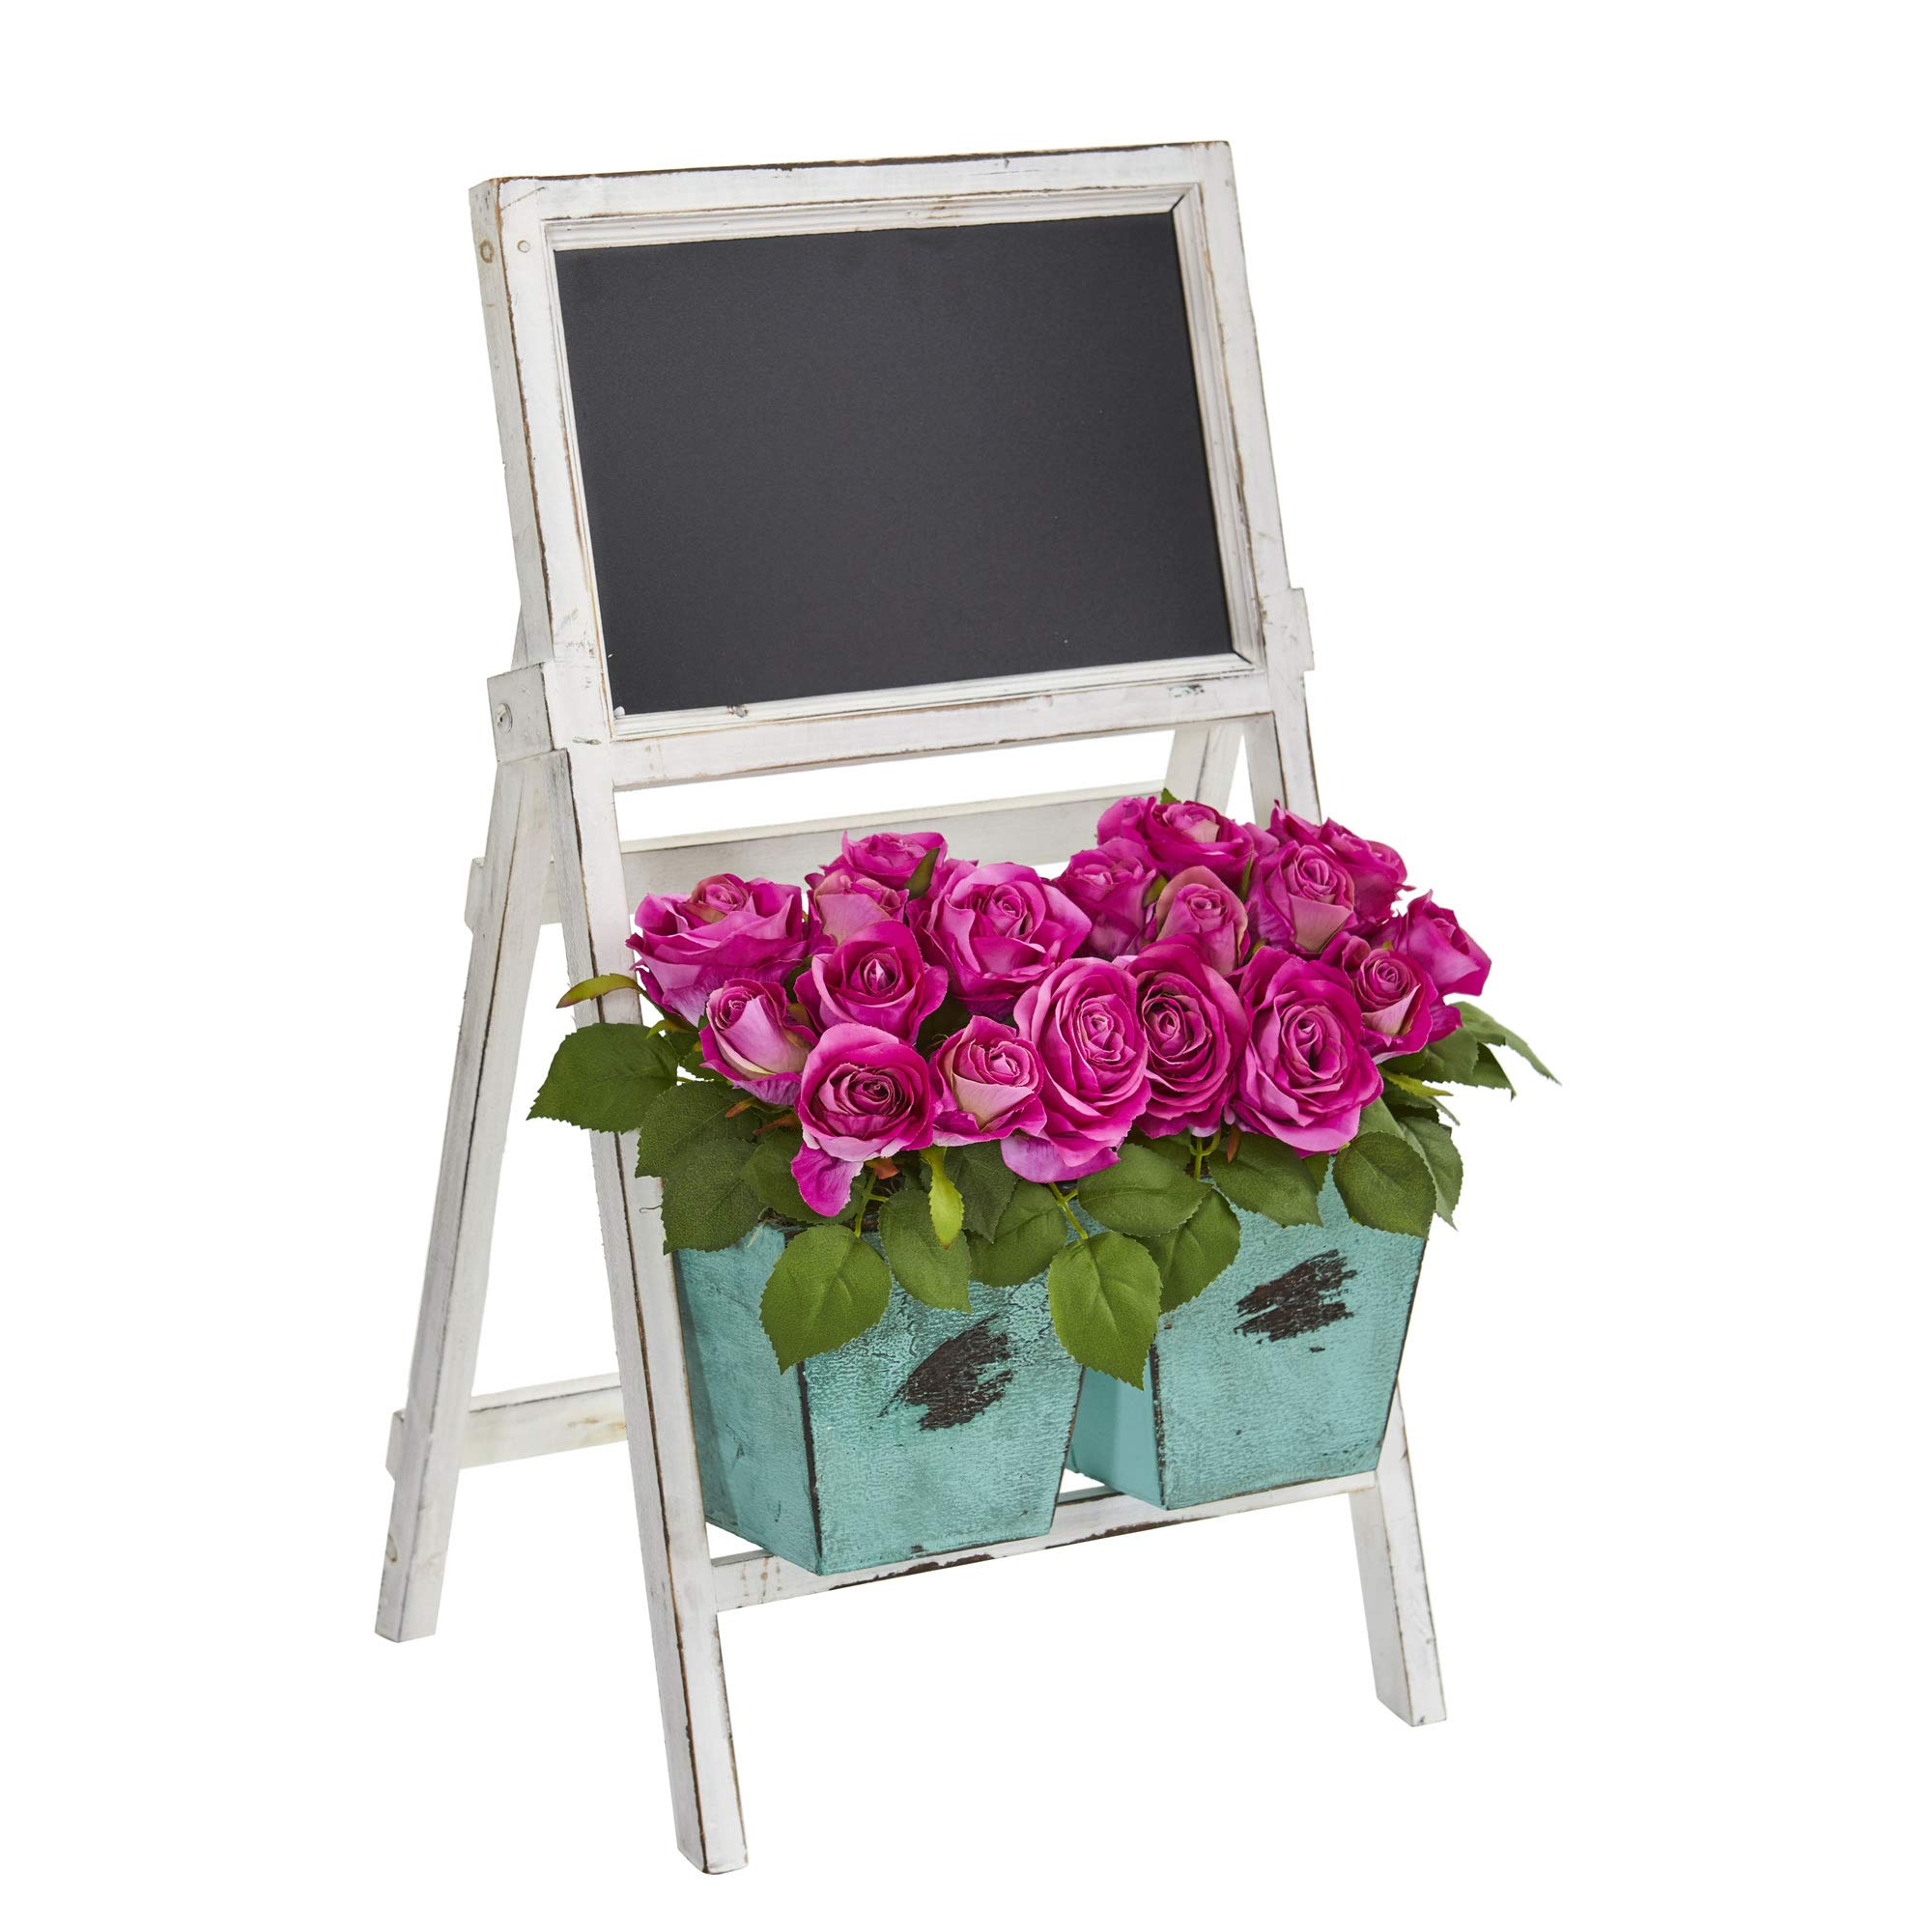 Nearly-Natural-1750-26-in-Rose-Artificial-Farmhouse-Stand-with-Chalkboard-Silk-Arrangements-Pink